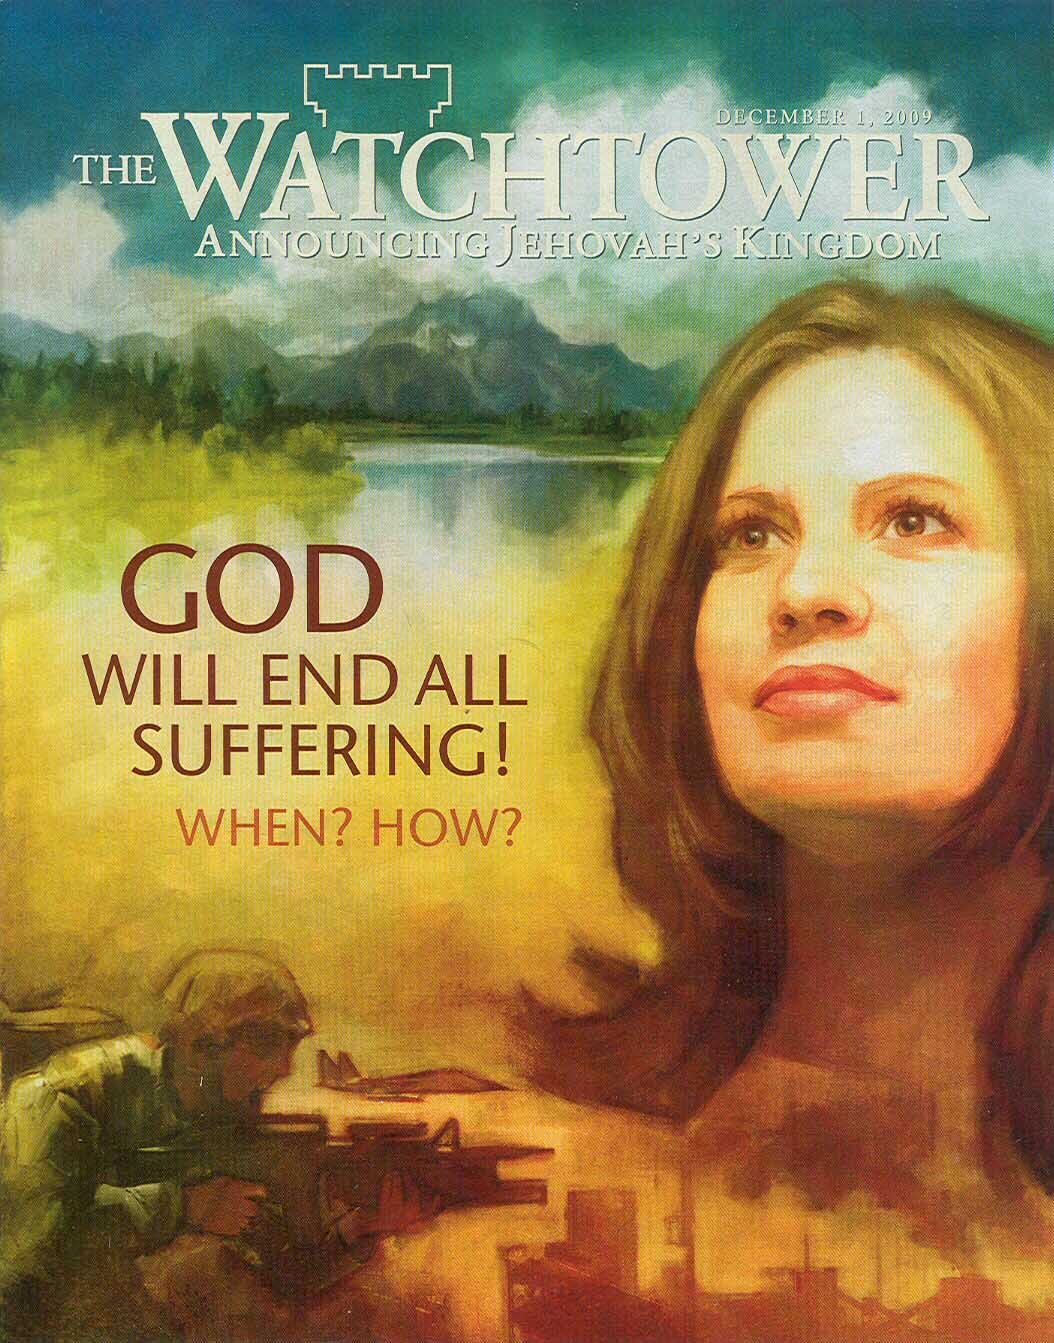 Jehovah Witnesses Images Watch Tower HD Wallpaper And Background Photos